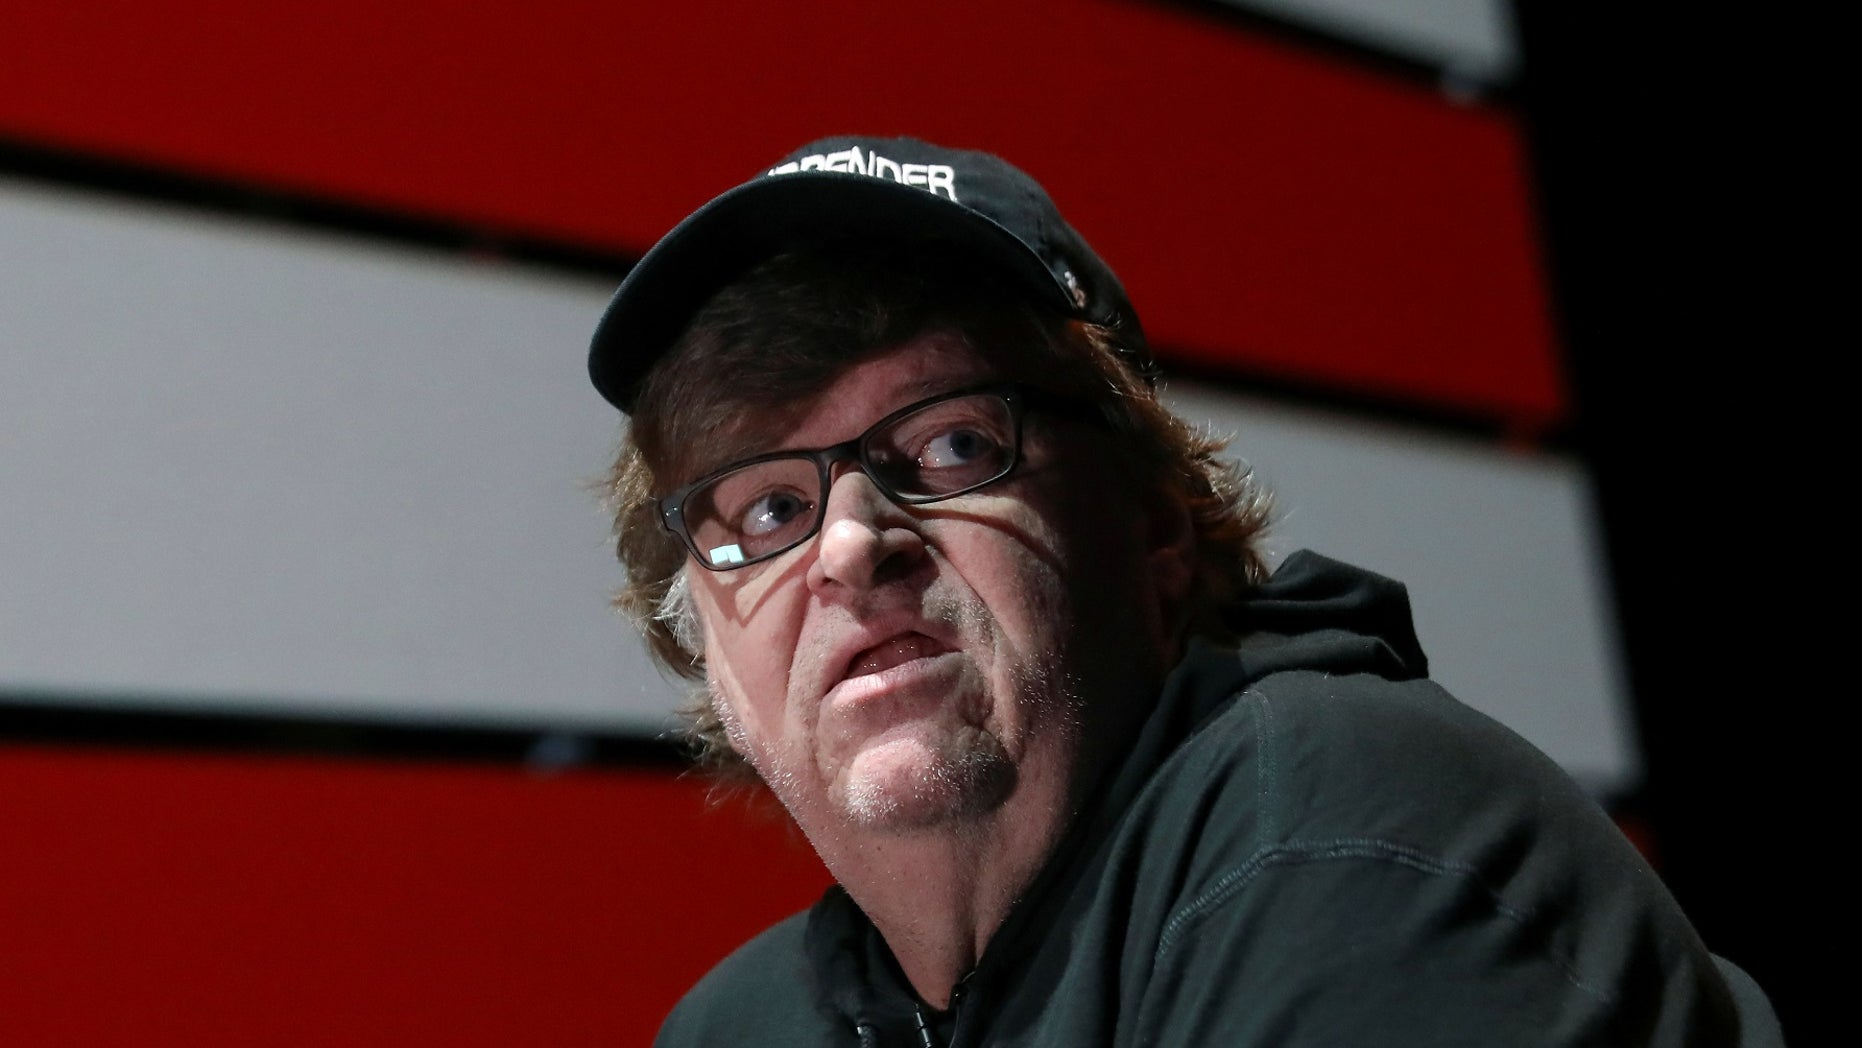 Filmmaker Michael Moore told MSNBC that President Trump 'absolutely' could be the last president of the United States.